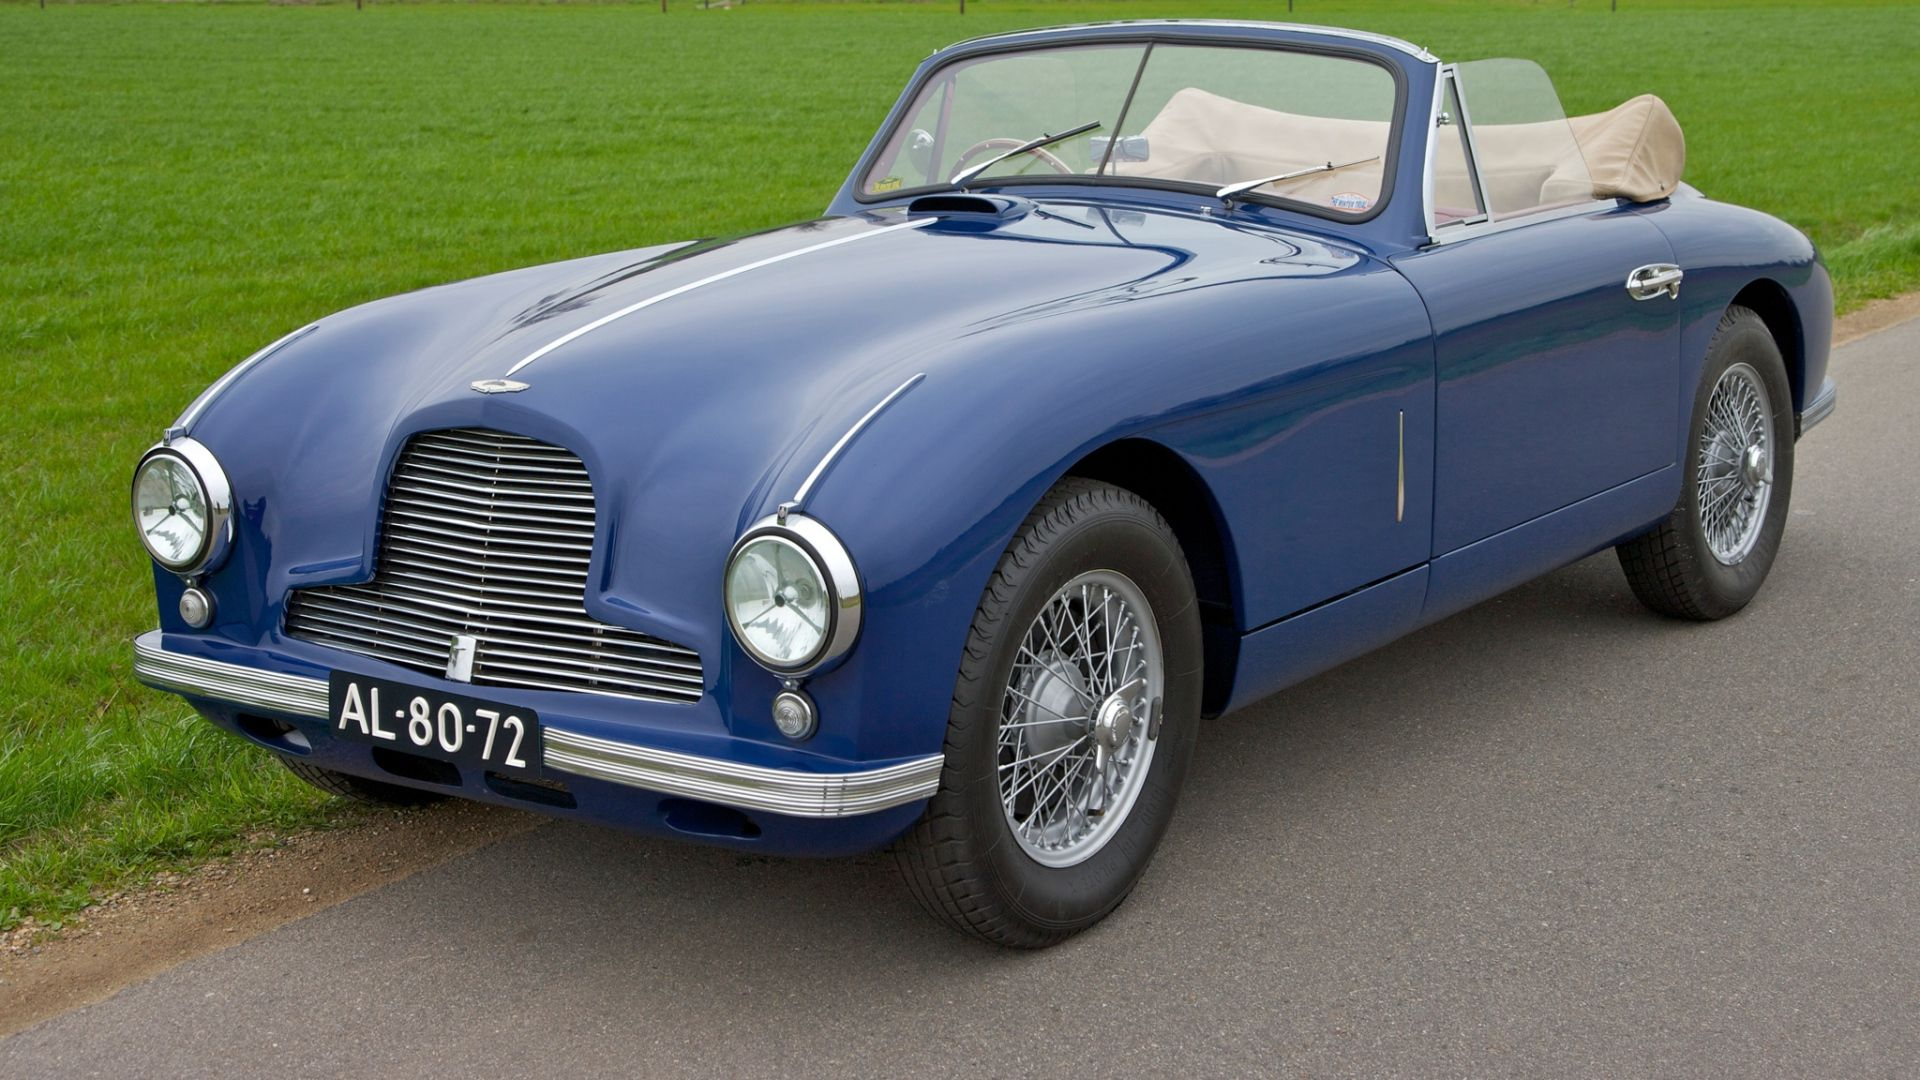 Download Wallpaper 1920x1080 Aston Martin 1951 Blue Side View Style Cars Nature Grass Houses Trees Full Hd 10 Aston Martin Db2 Aston Martin Cars Aston